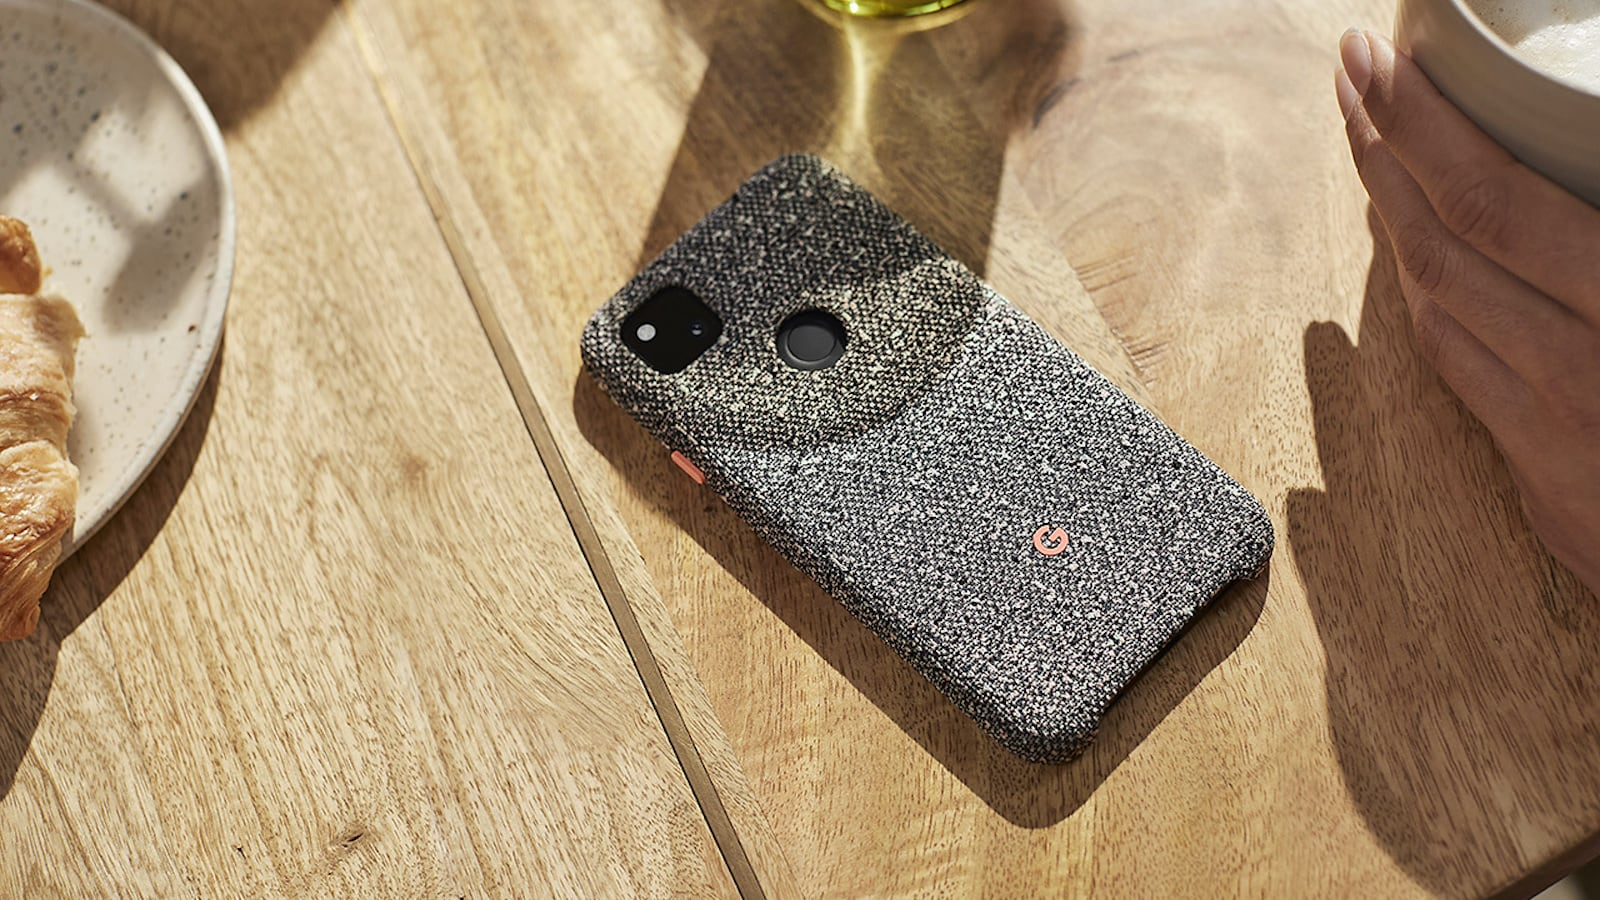 Google Pixel 4a Case Knit Cover is made mostly from recycled plastic